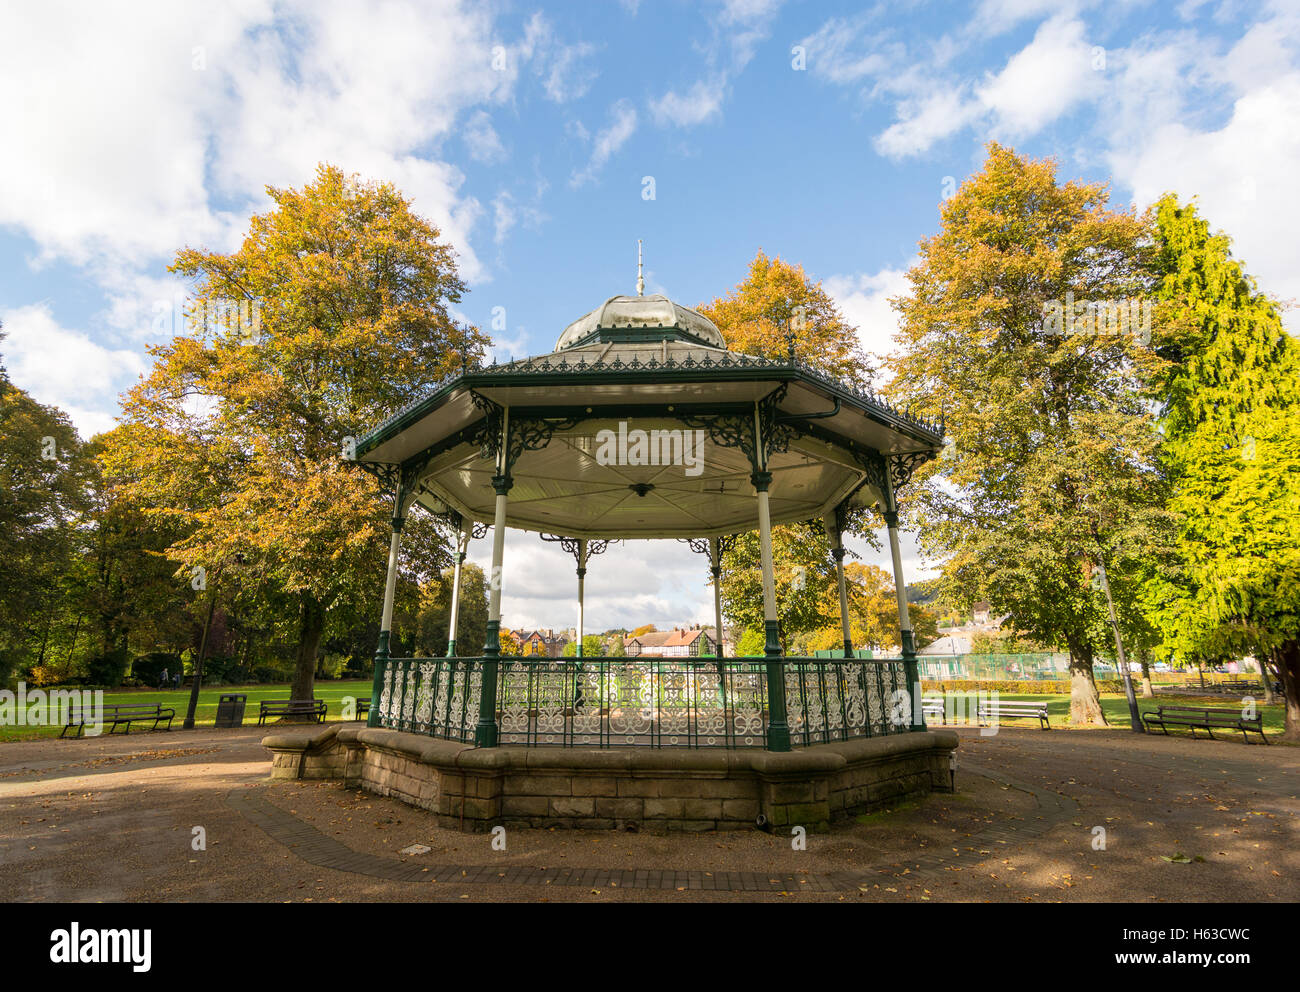 Bandstand In the park at Matlock, Derbyshire, UK. - Stock Image